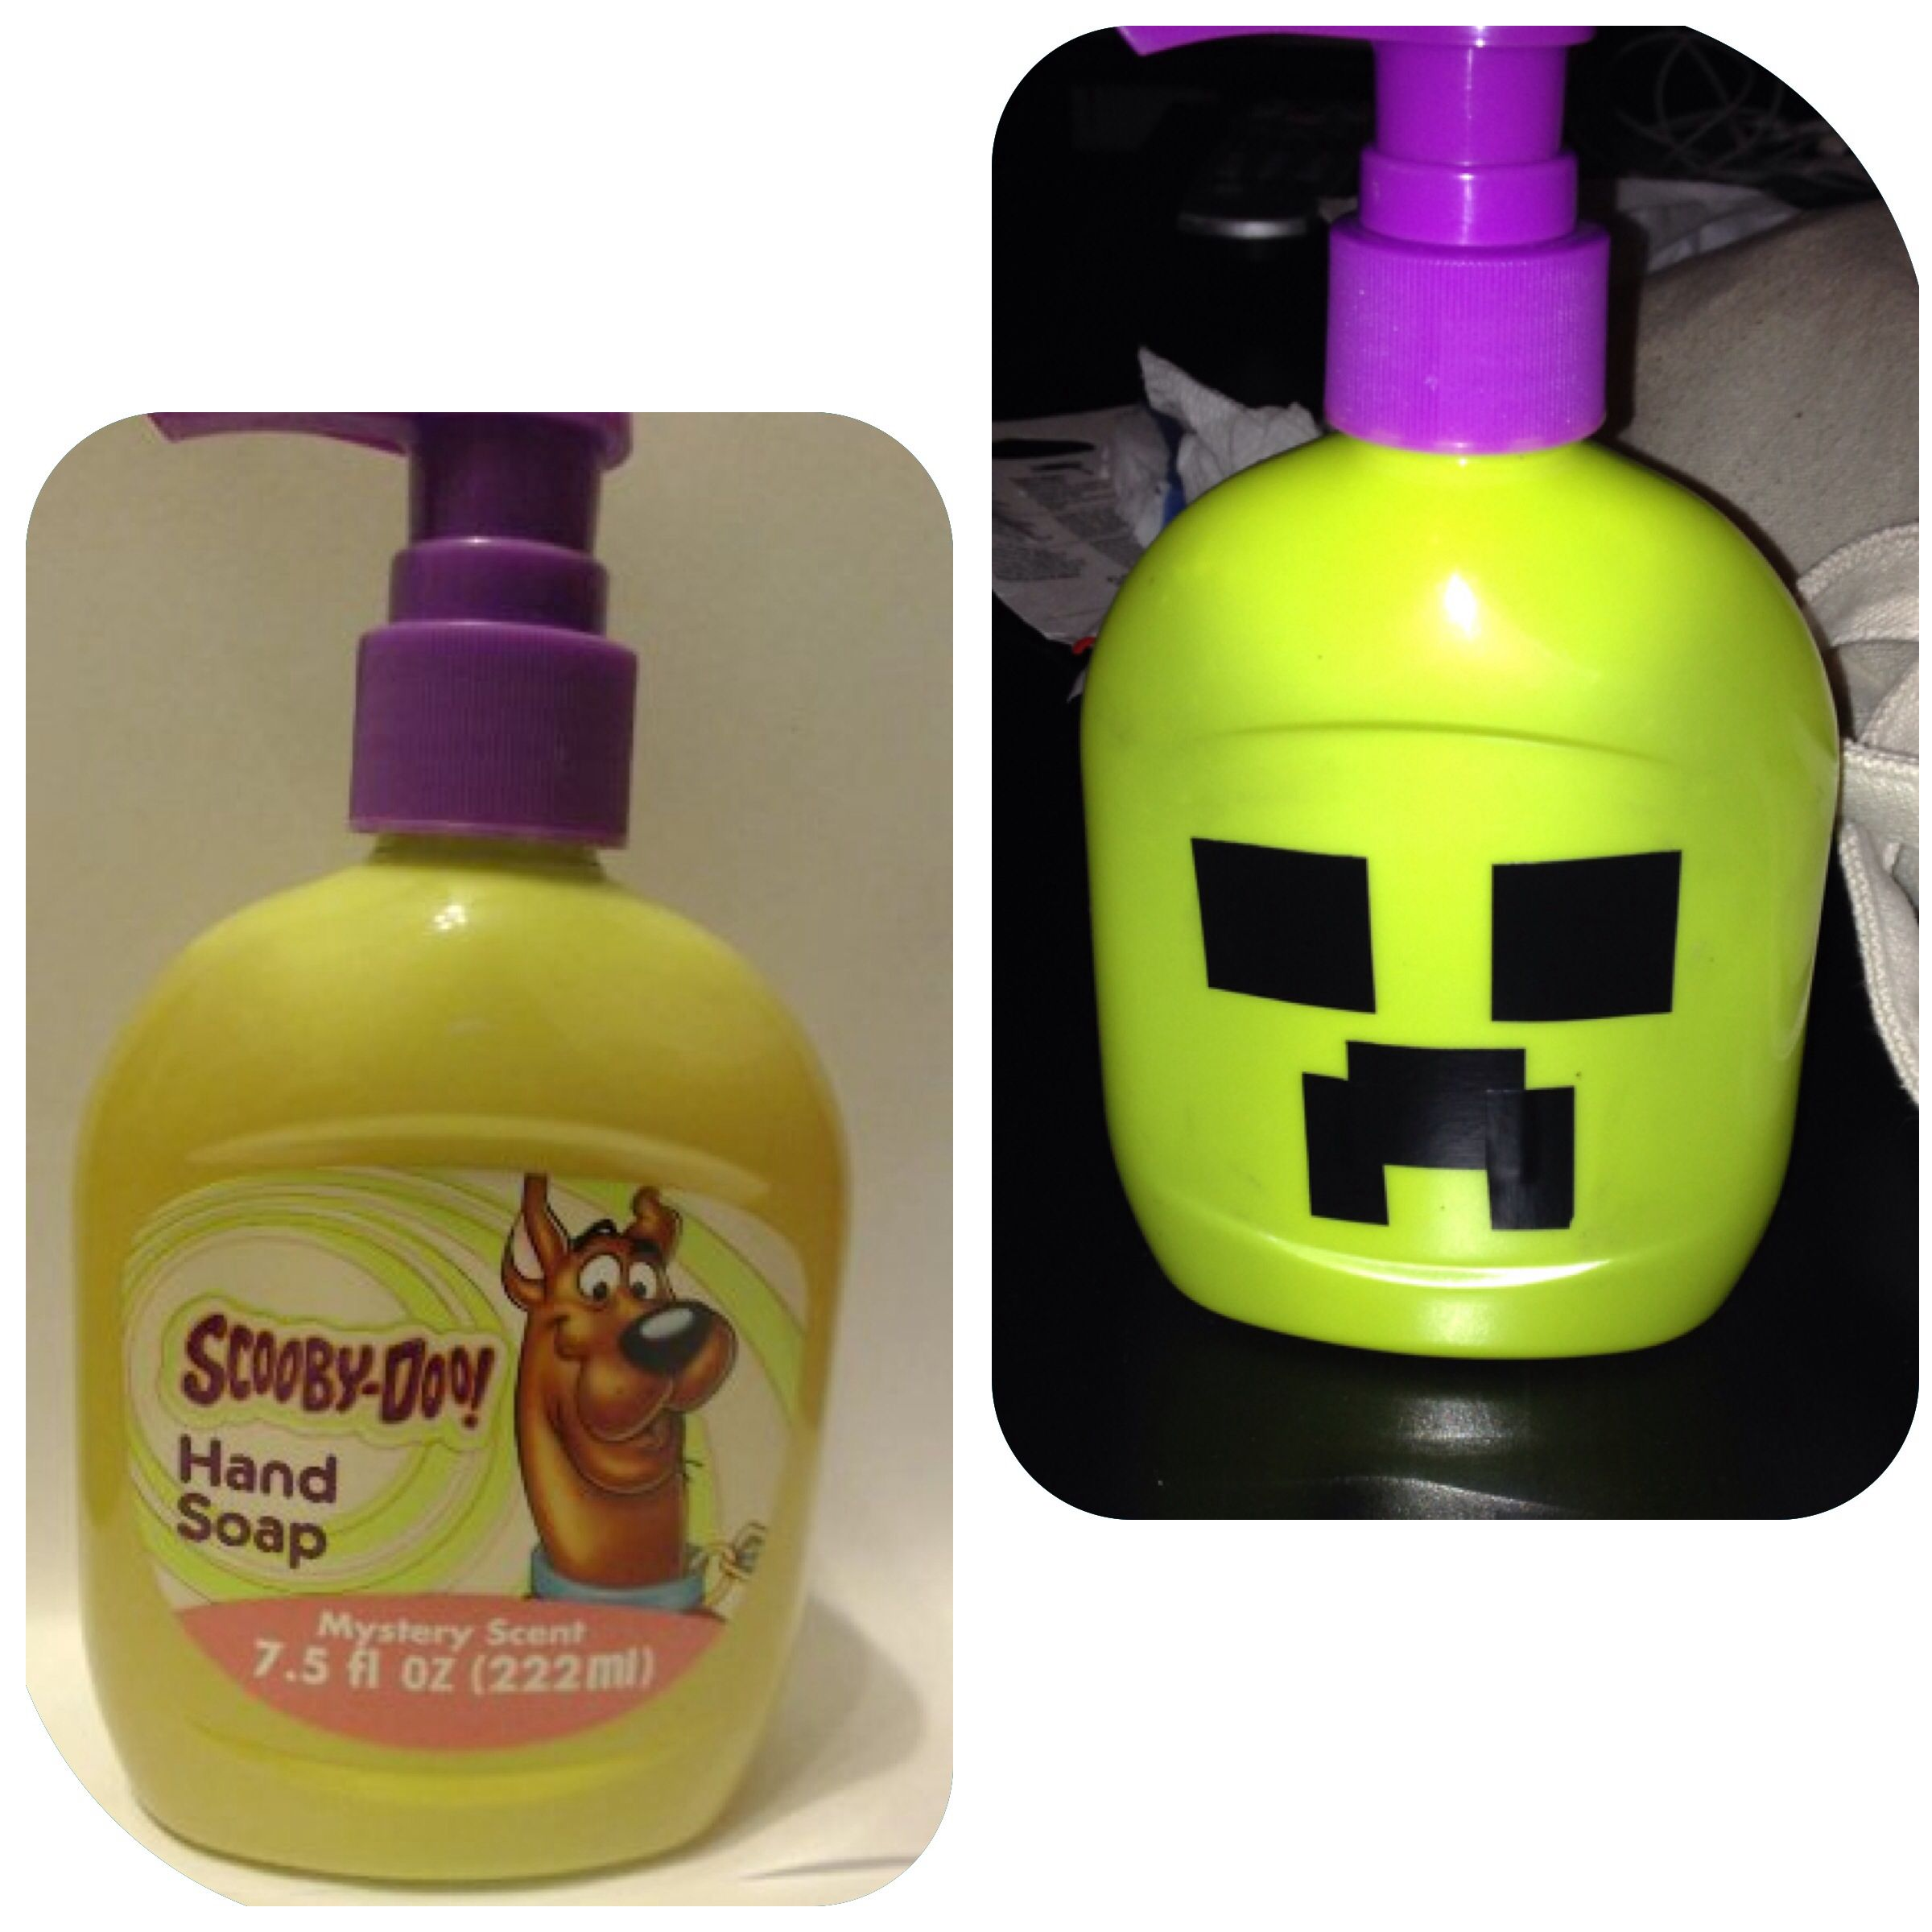 DIY Minecraft Soap For Bday Party Found This Scooby Doo Hand On Sale At Target Removed Label Added Creeper Face With Black Tape TA DA